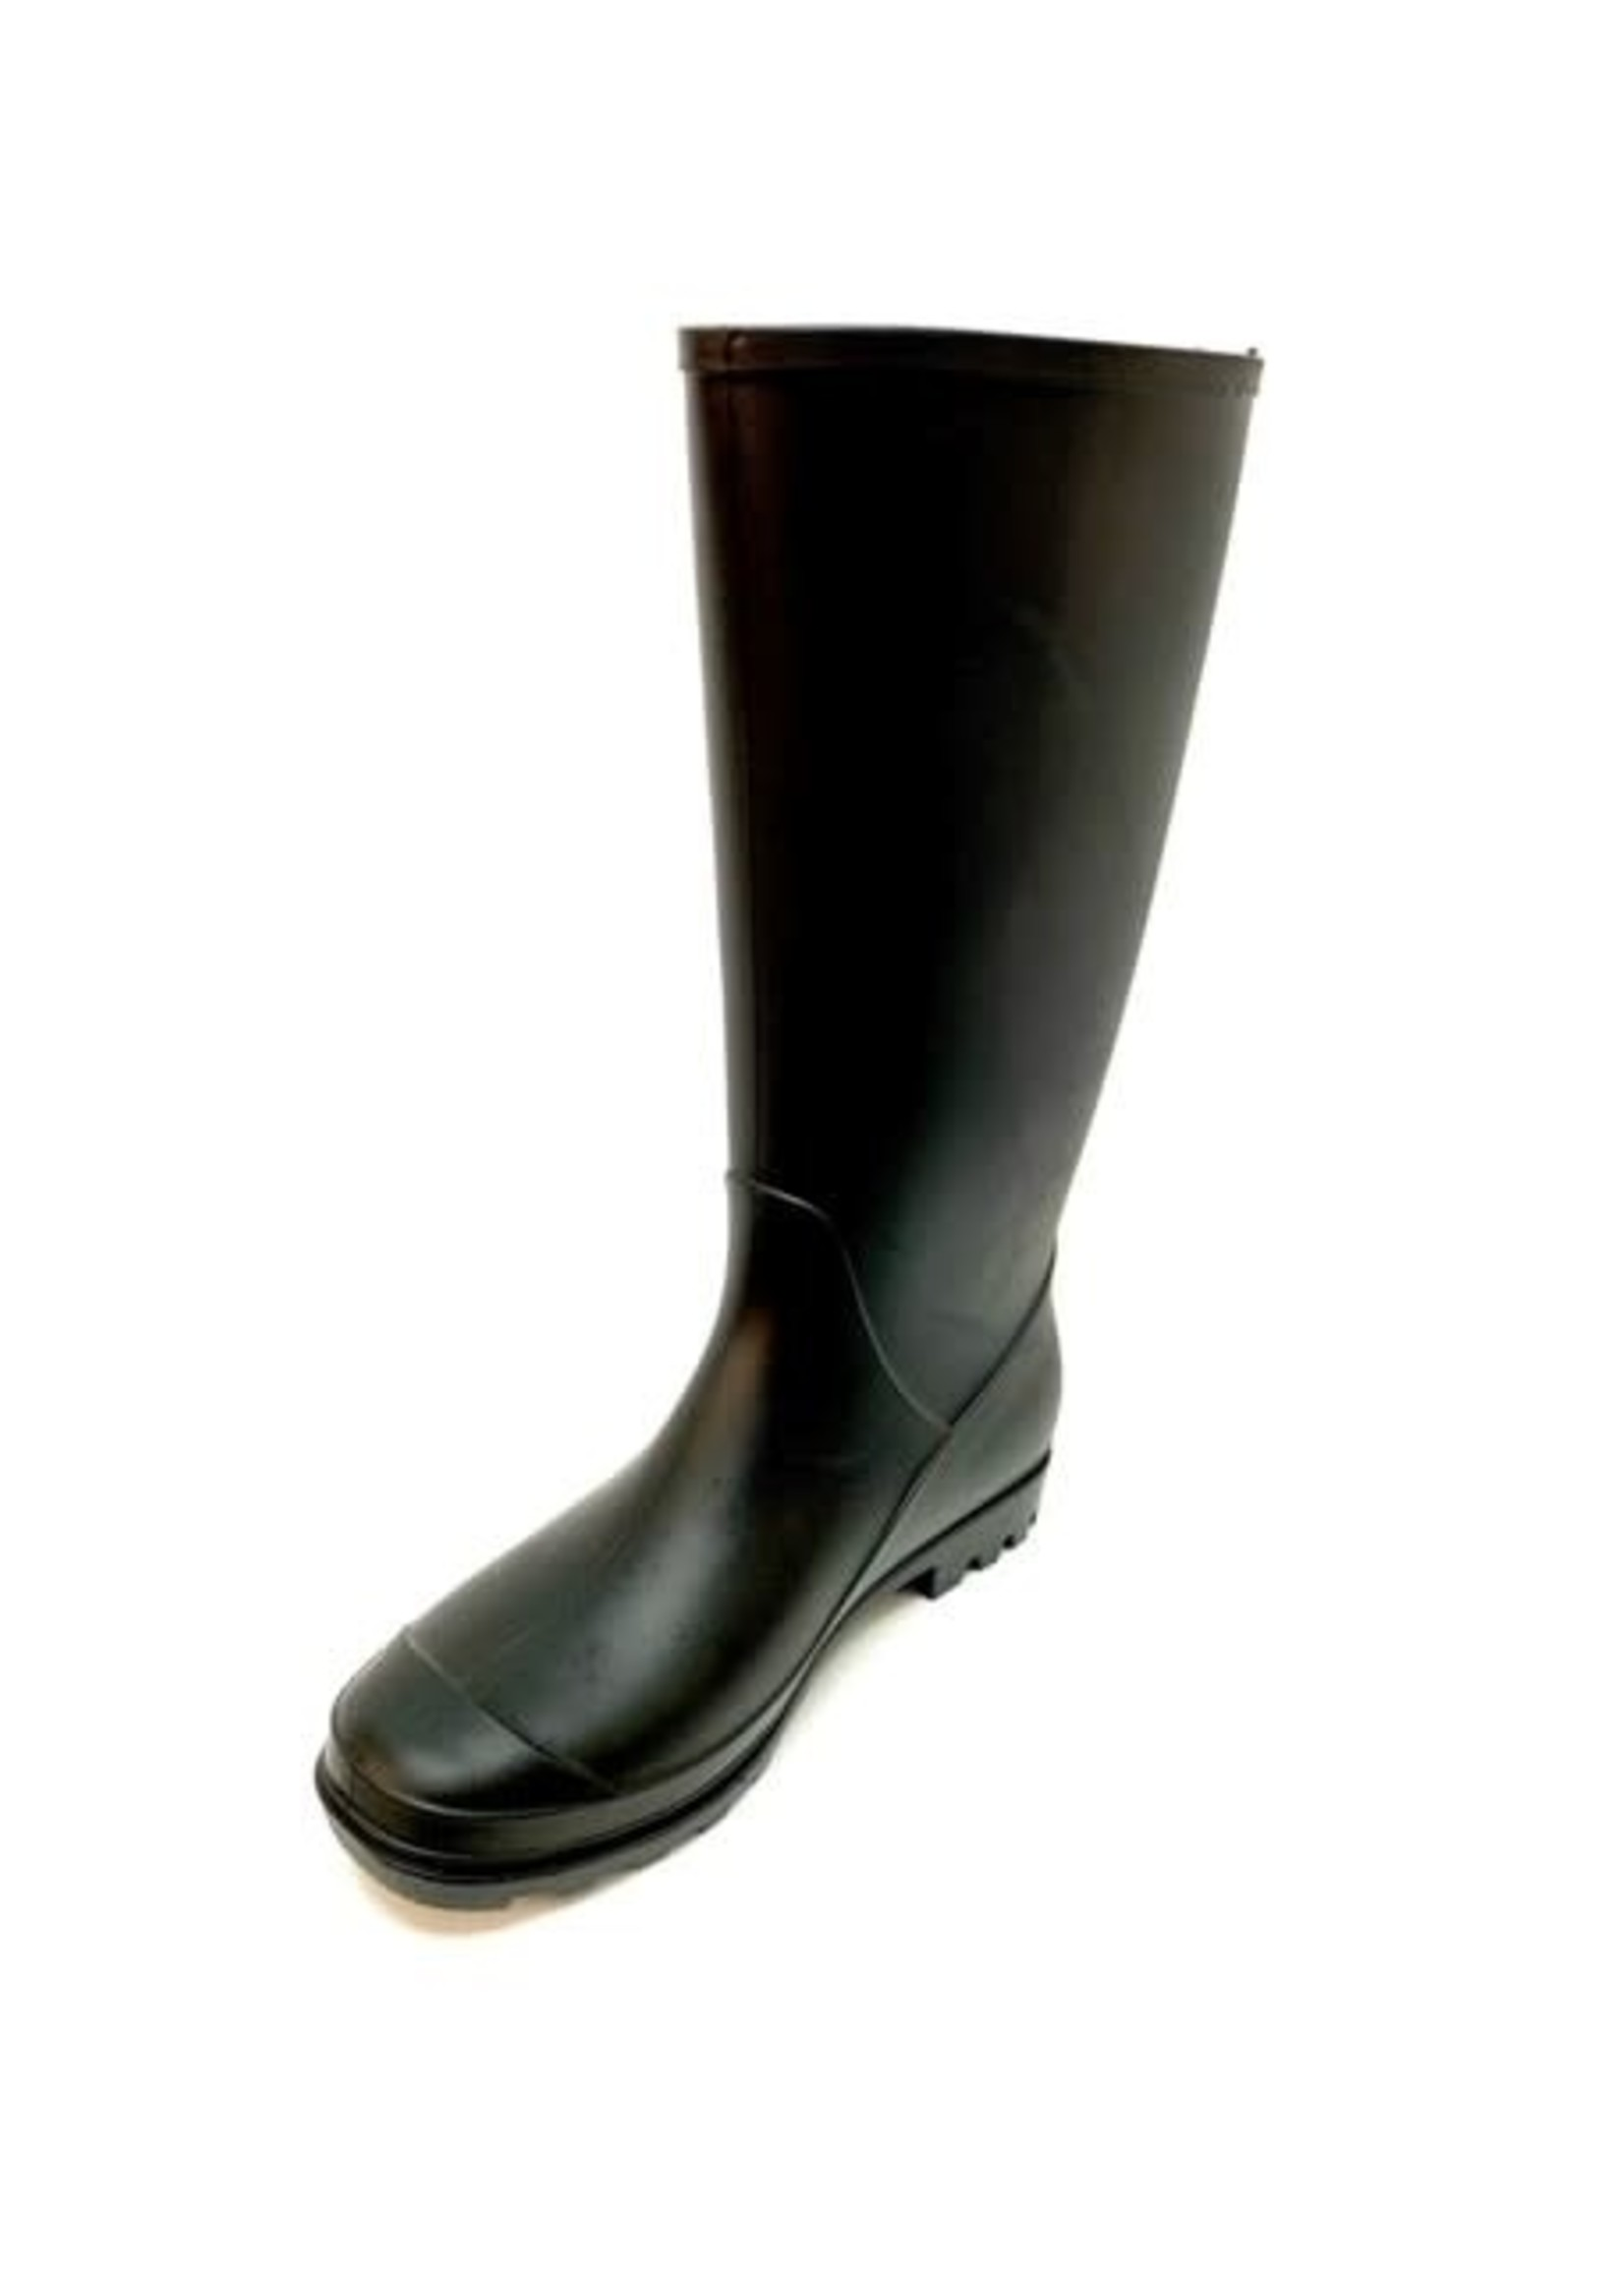 Soft Comfort Rubber Boots two styles